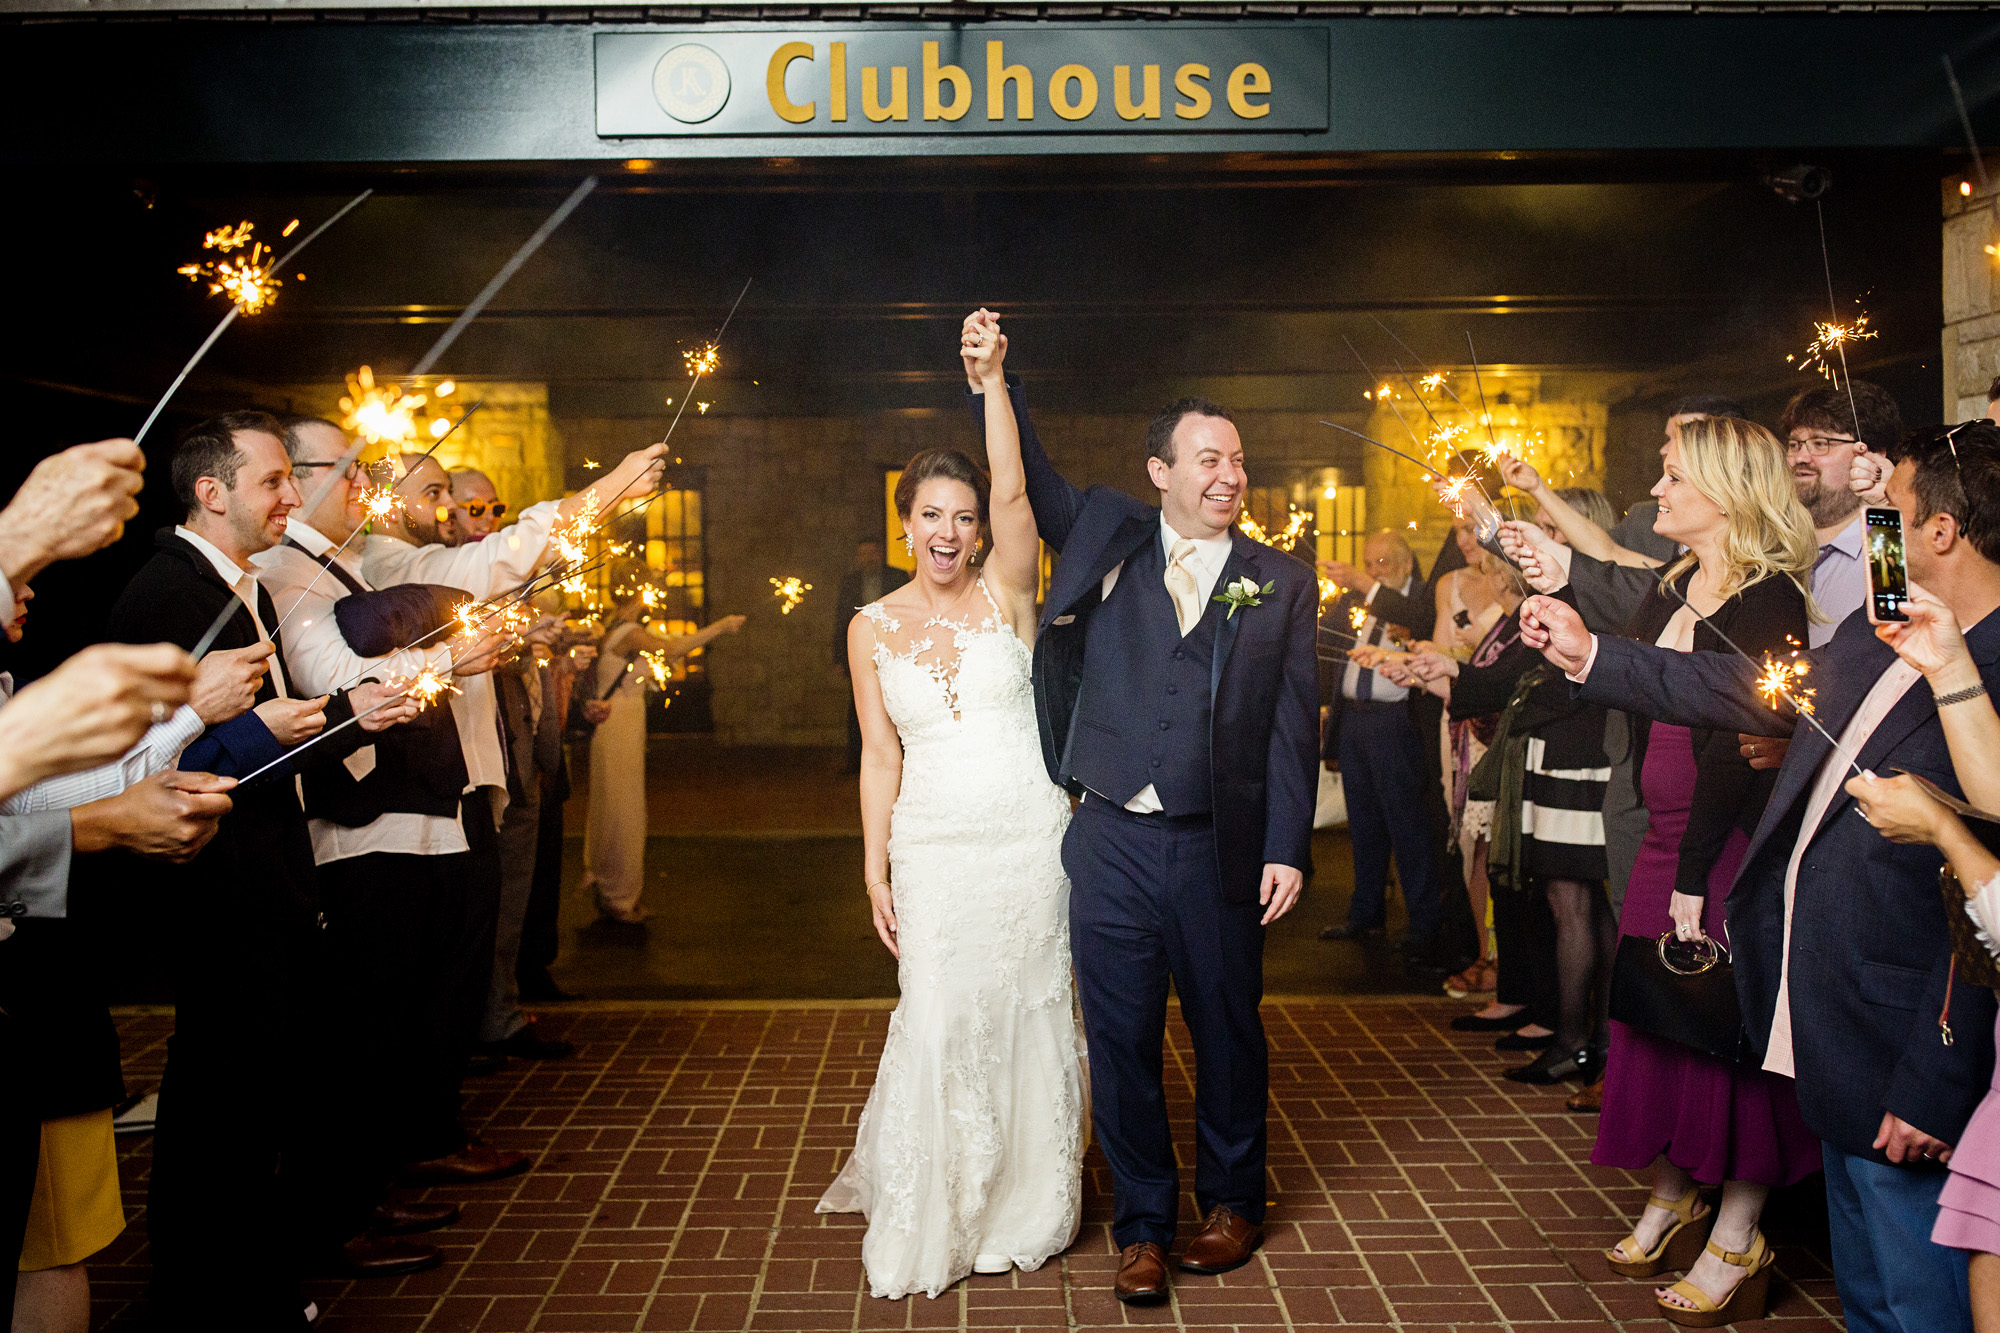 Seriously_Sabrina_Photography_Lexington_Kentucky_Downtown_Keeneland_Clubhouse_Wedding_Spitzer_163.jpg